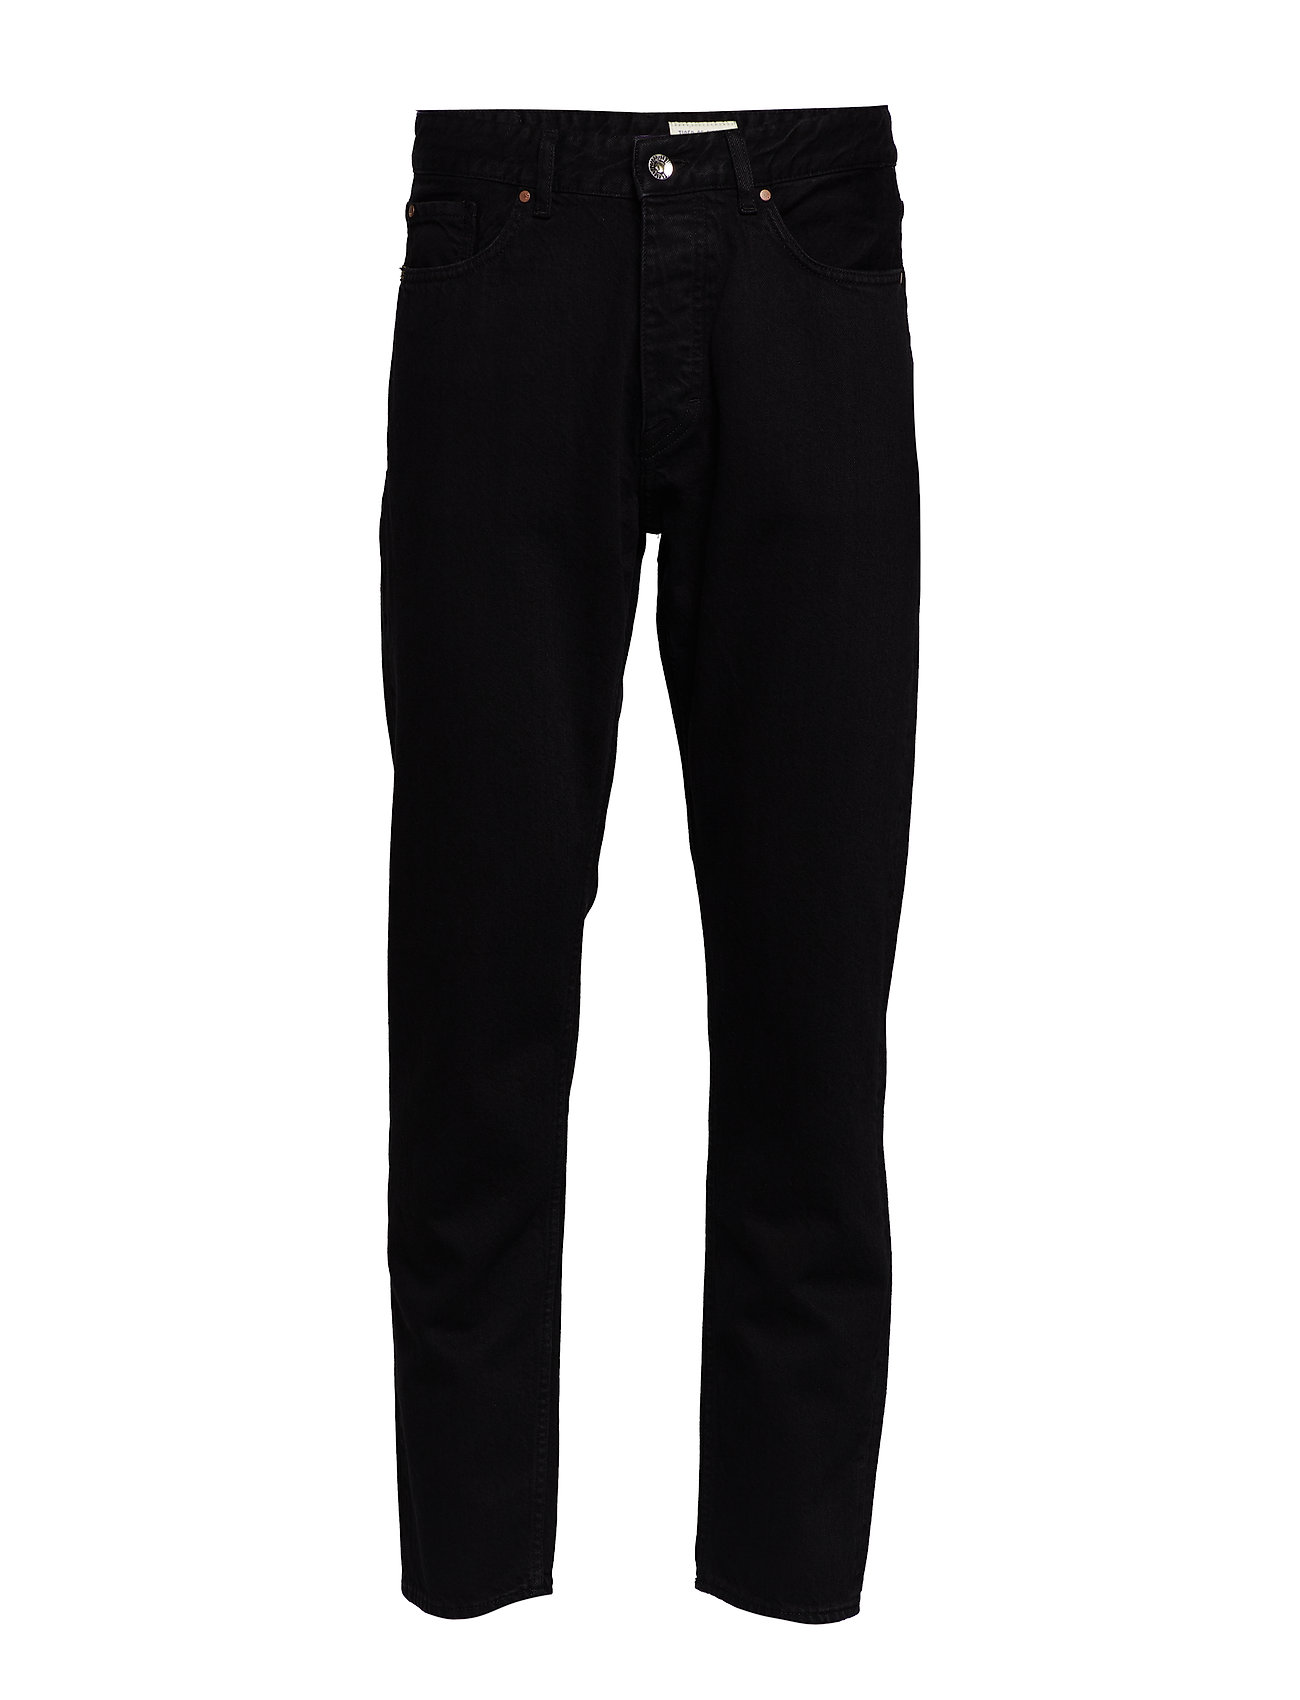 Tiger of Sweden Jeans NIX - BLACK